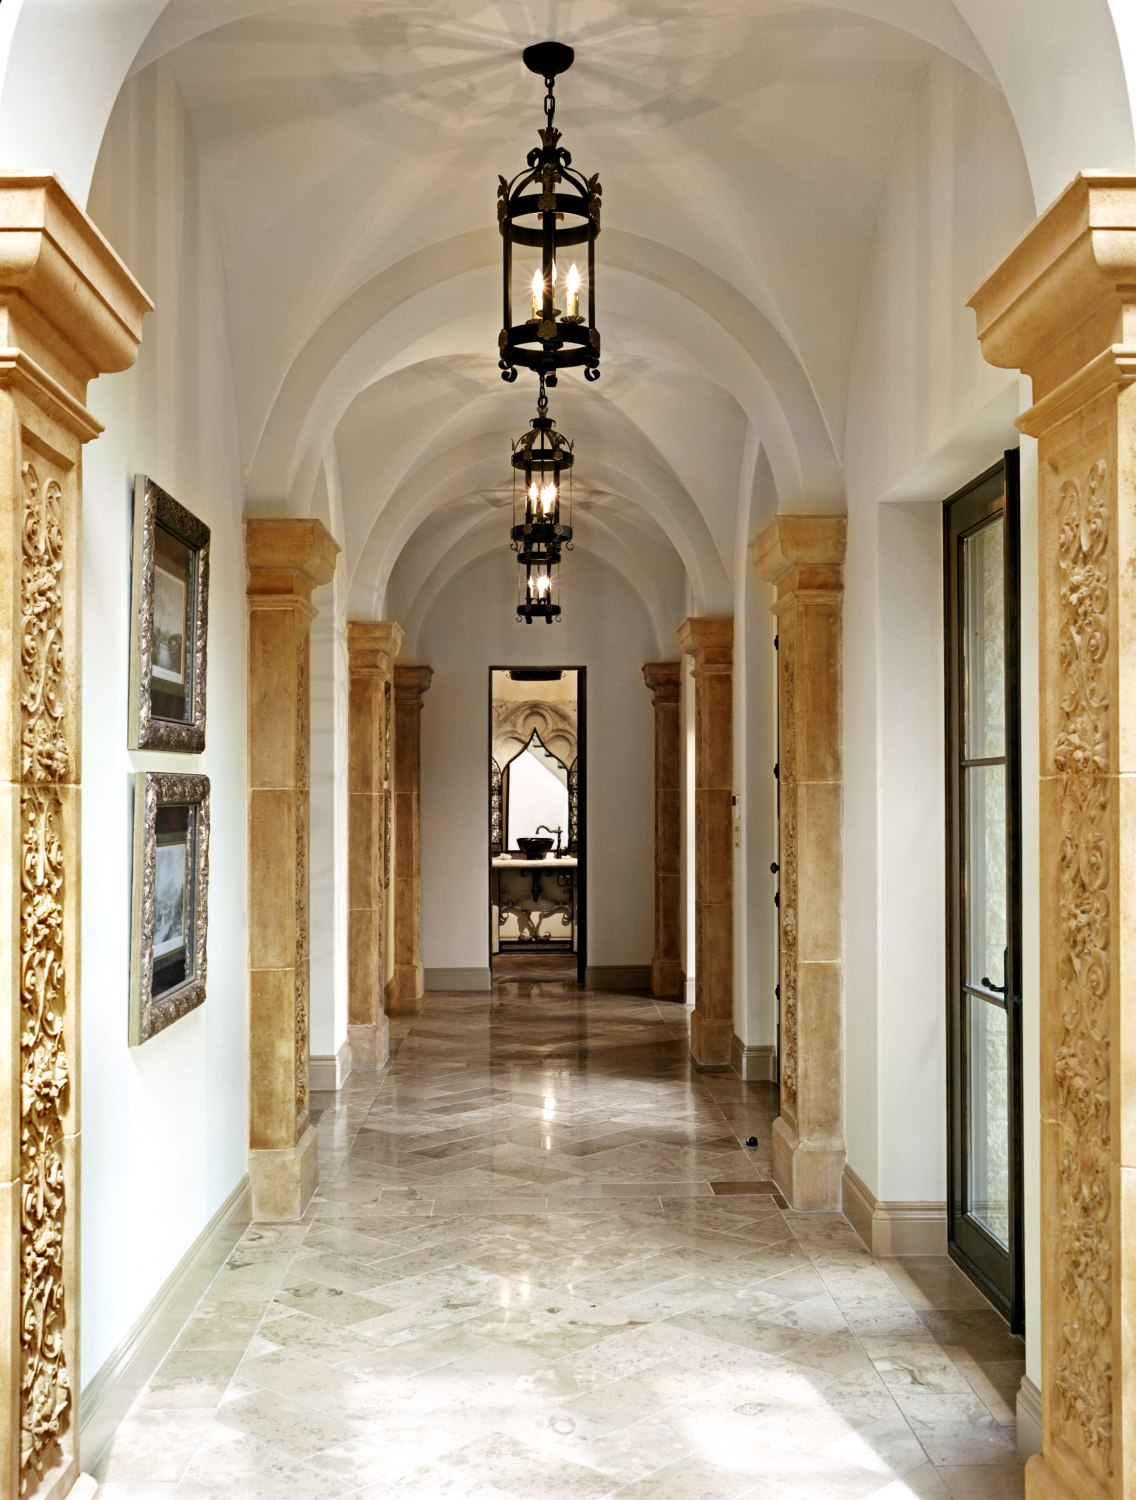 Architecture-Home-Coldwater-Canyon-12-Hallway.jpg